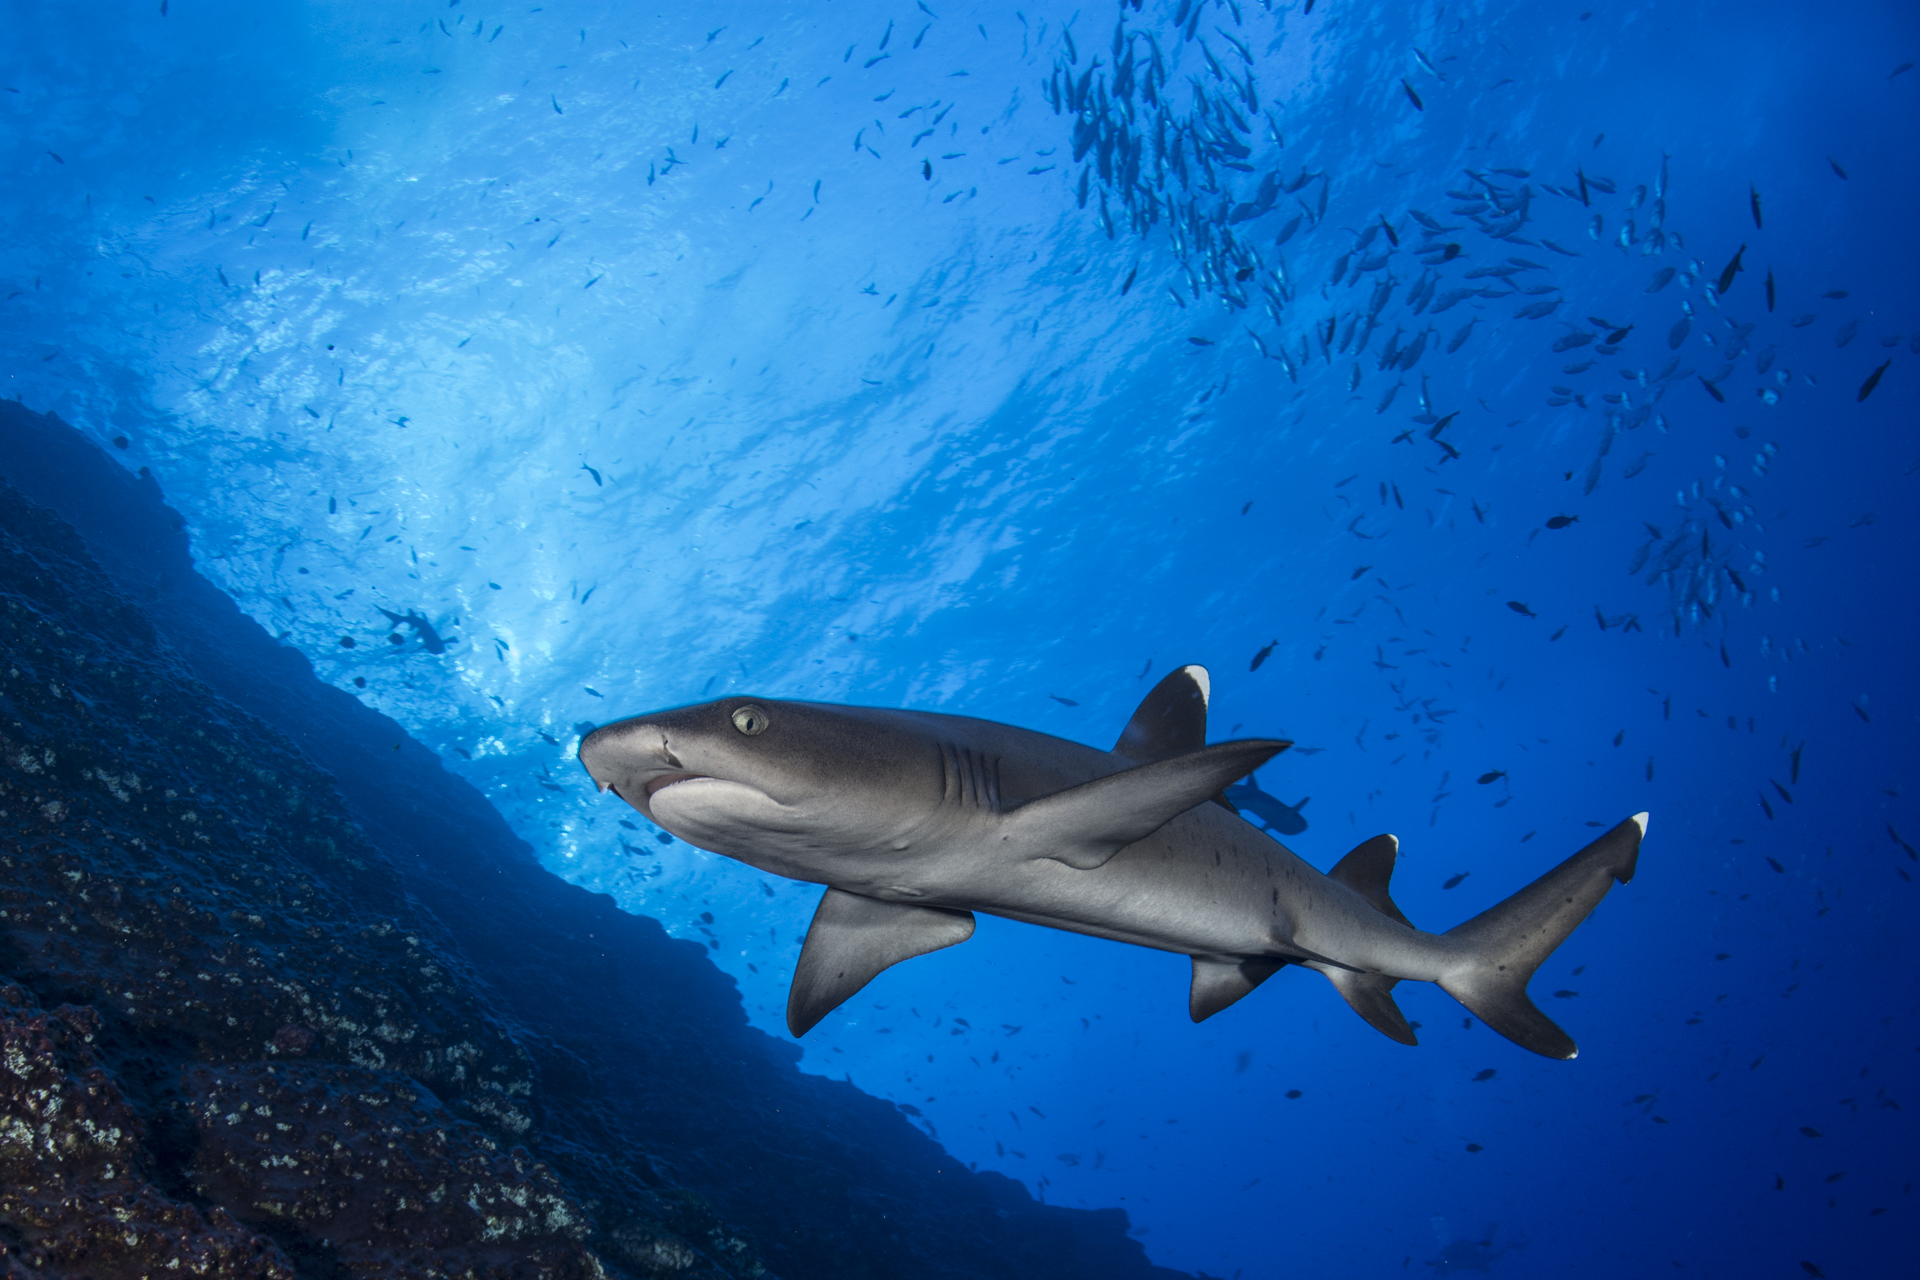 Shark Red Sea Diving Safari With M Y Cassiopeia And M Y Andromeda Liveaboards And Diving Safaris In Egypt Sudan